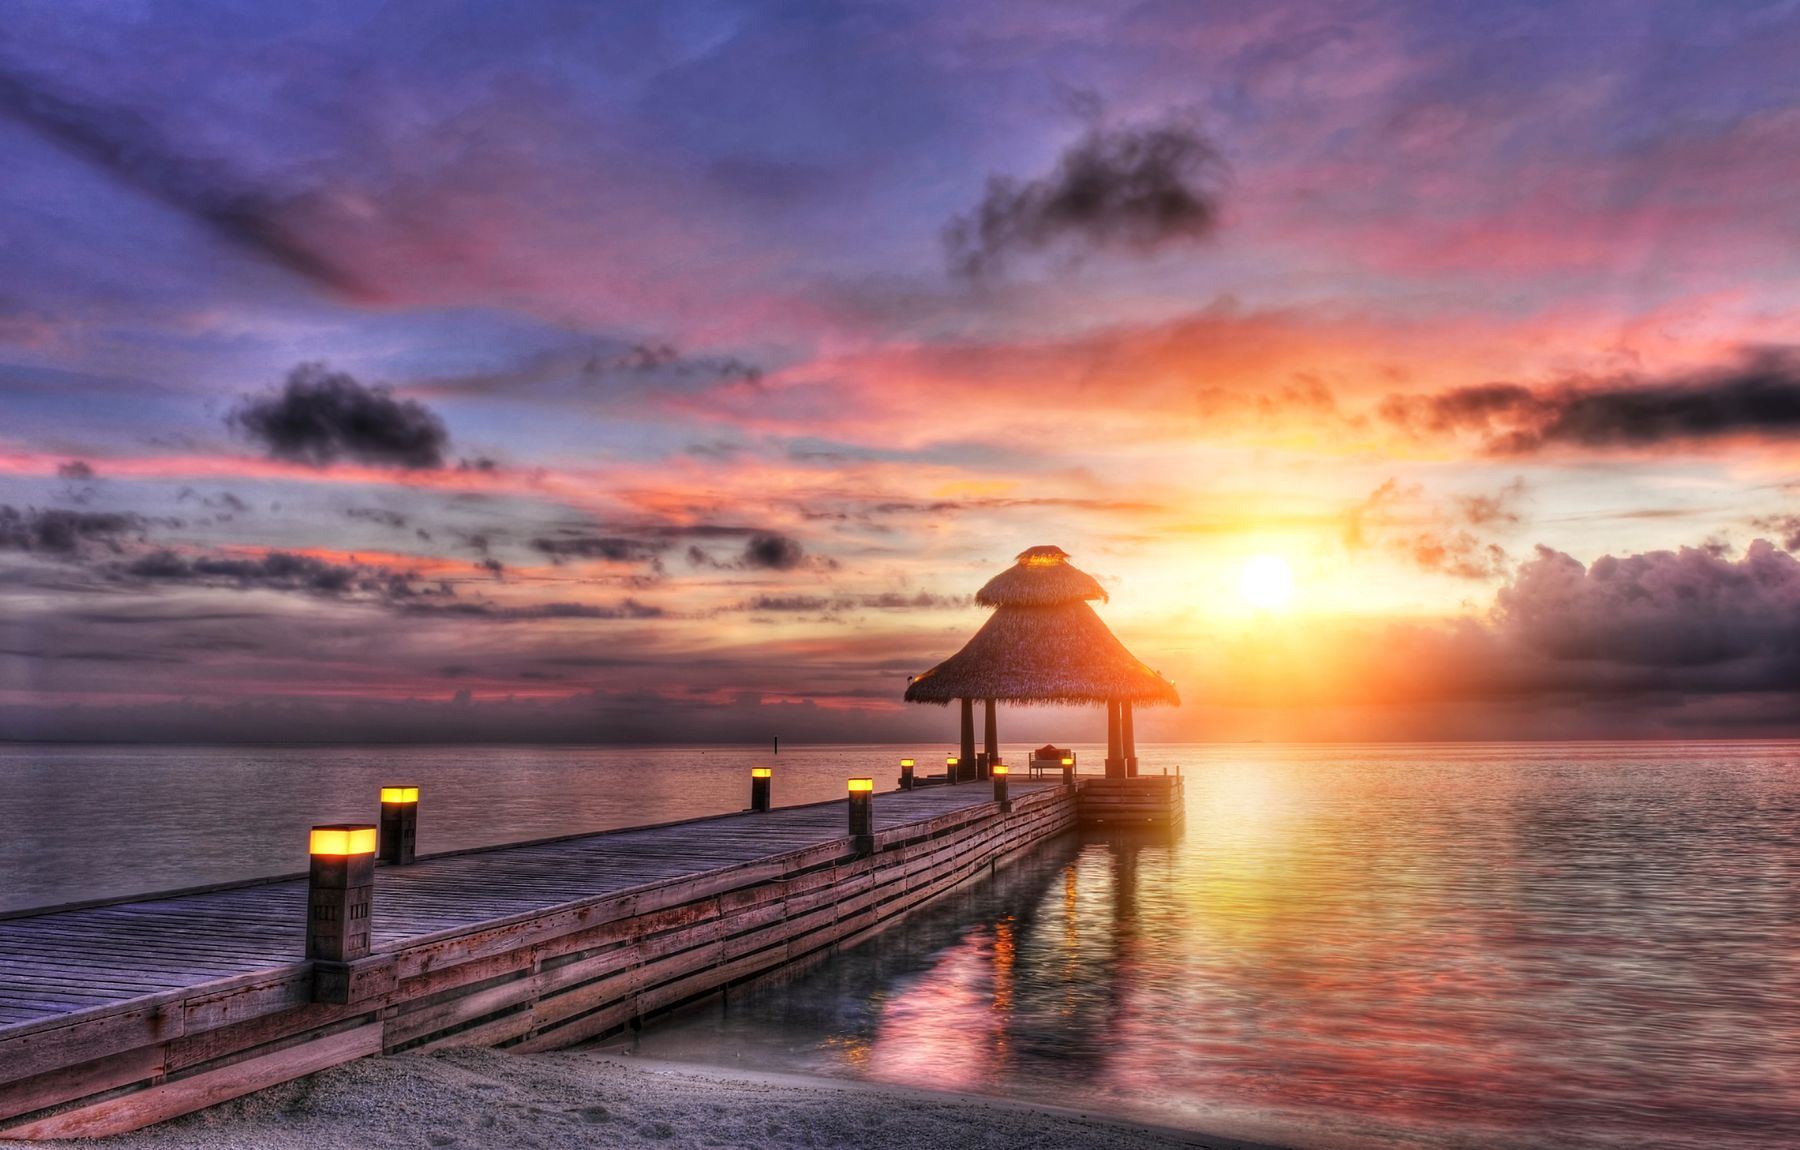 water dock with small patio overlooking a sunset over the ocean. Looking for a warm place to travel in December? Check out the Maldives.